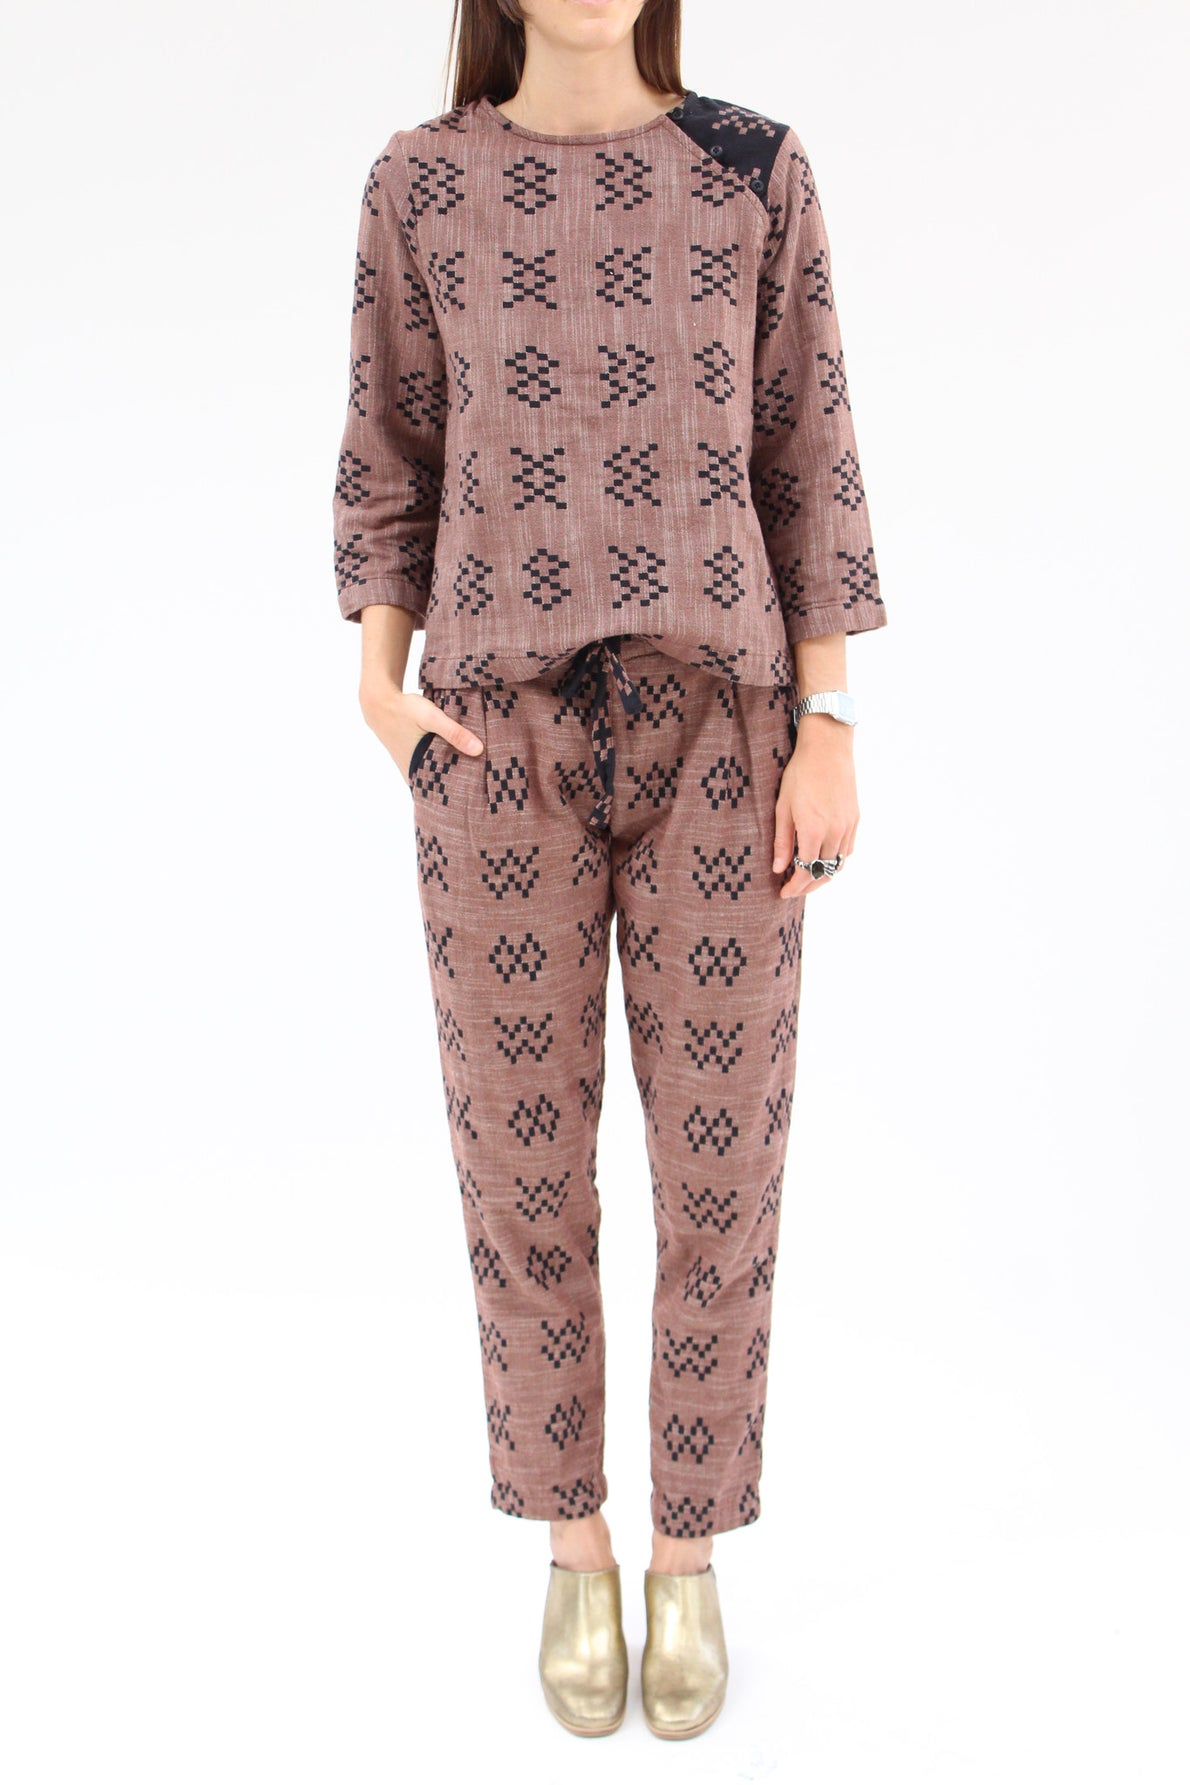 Ace & Jig Stafford Pant Sampler Brown / Beklina